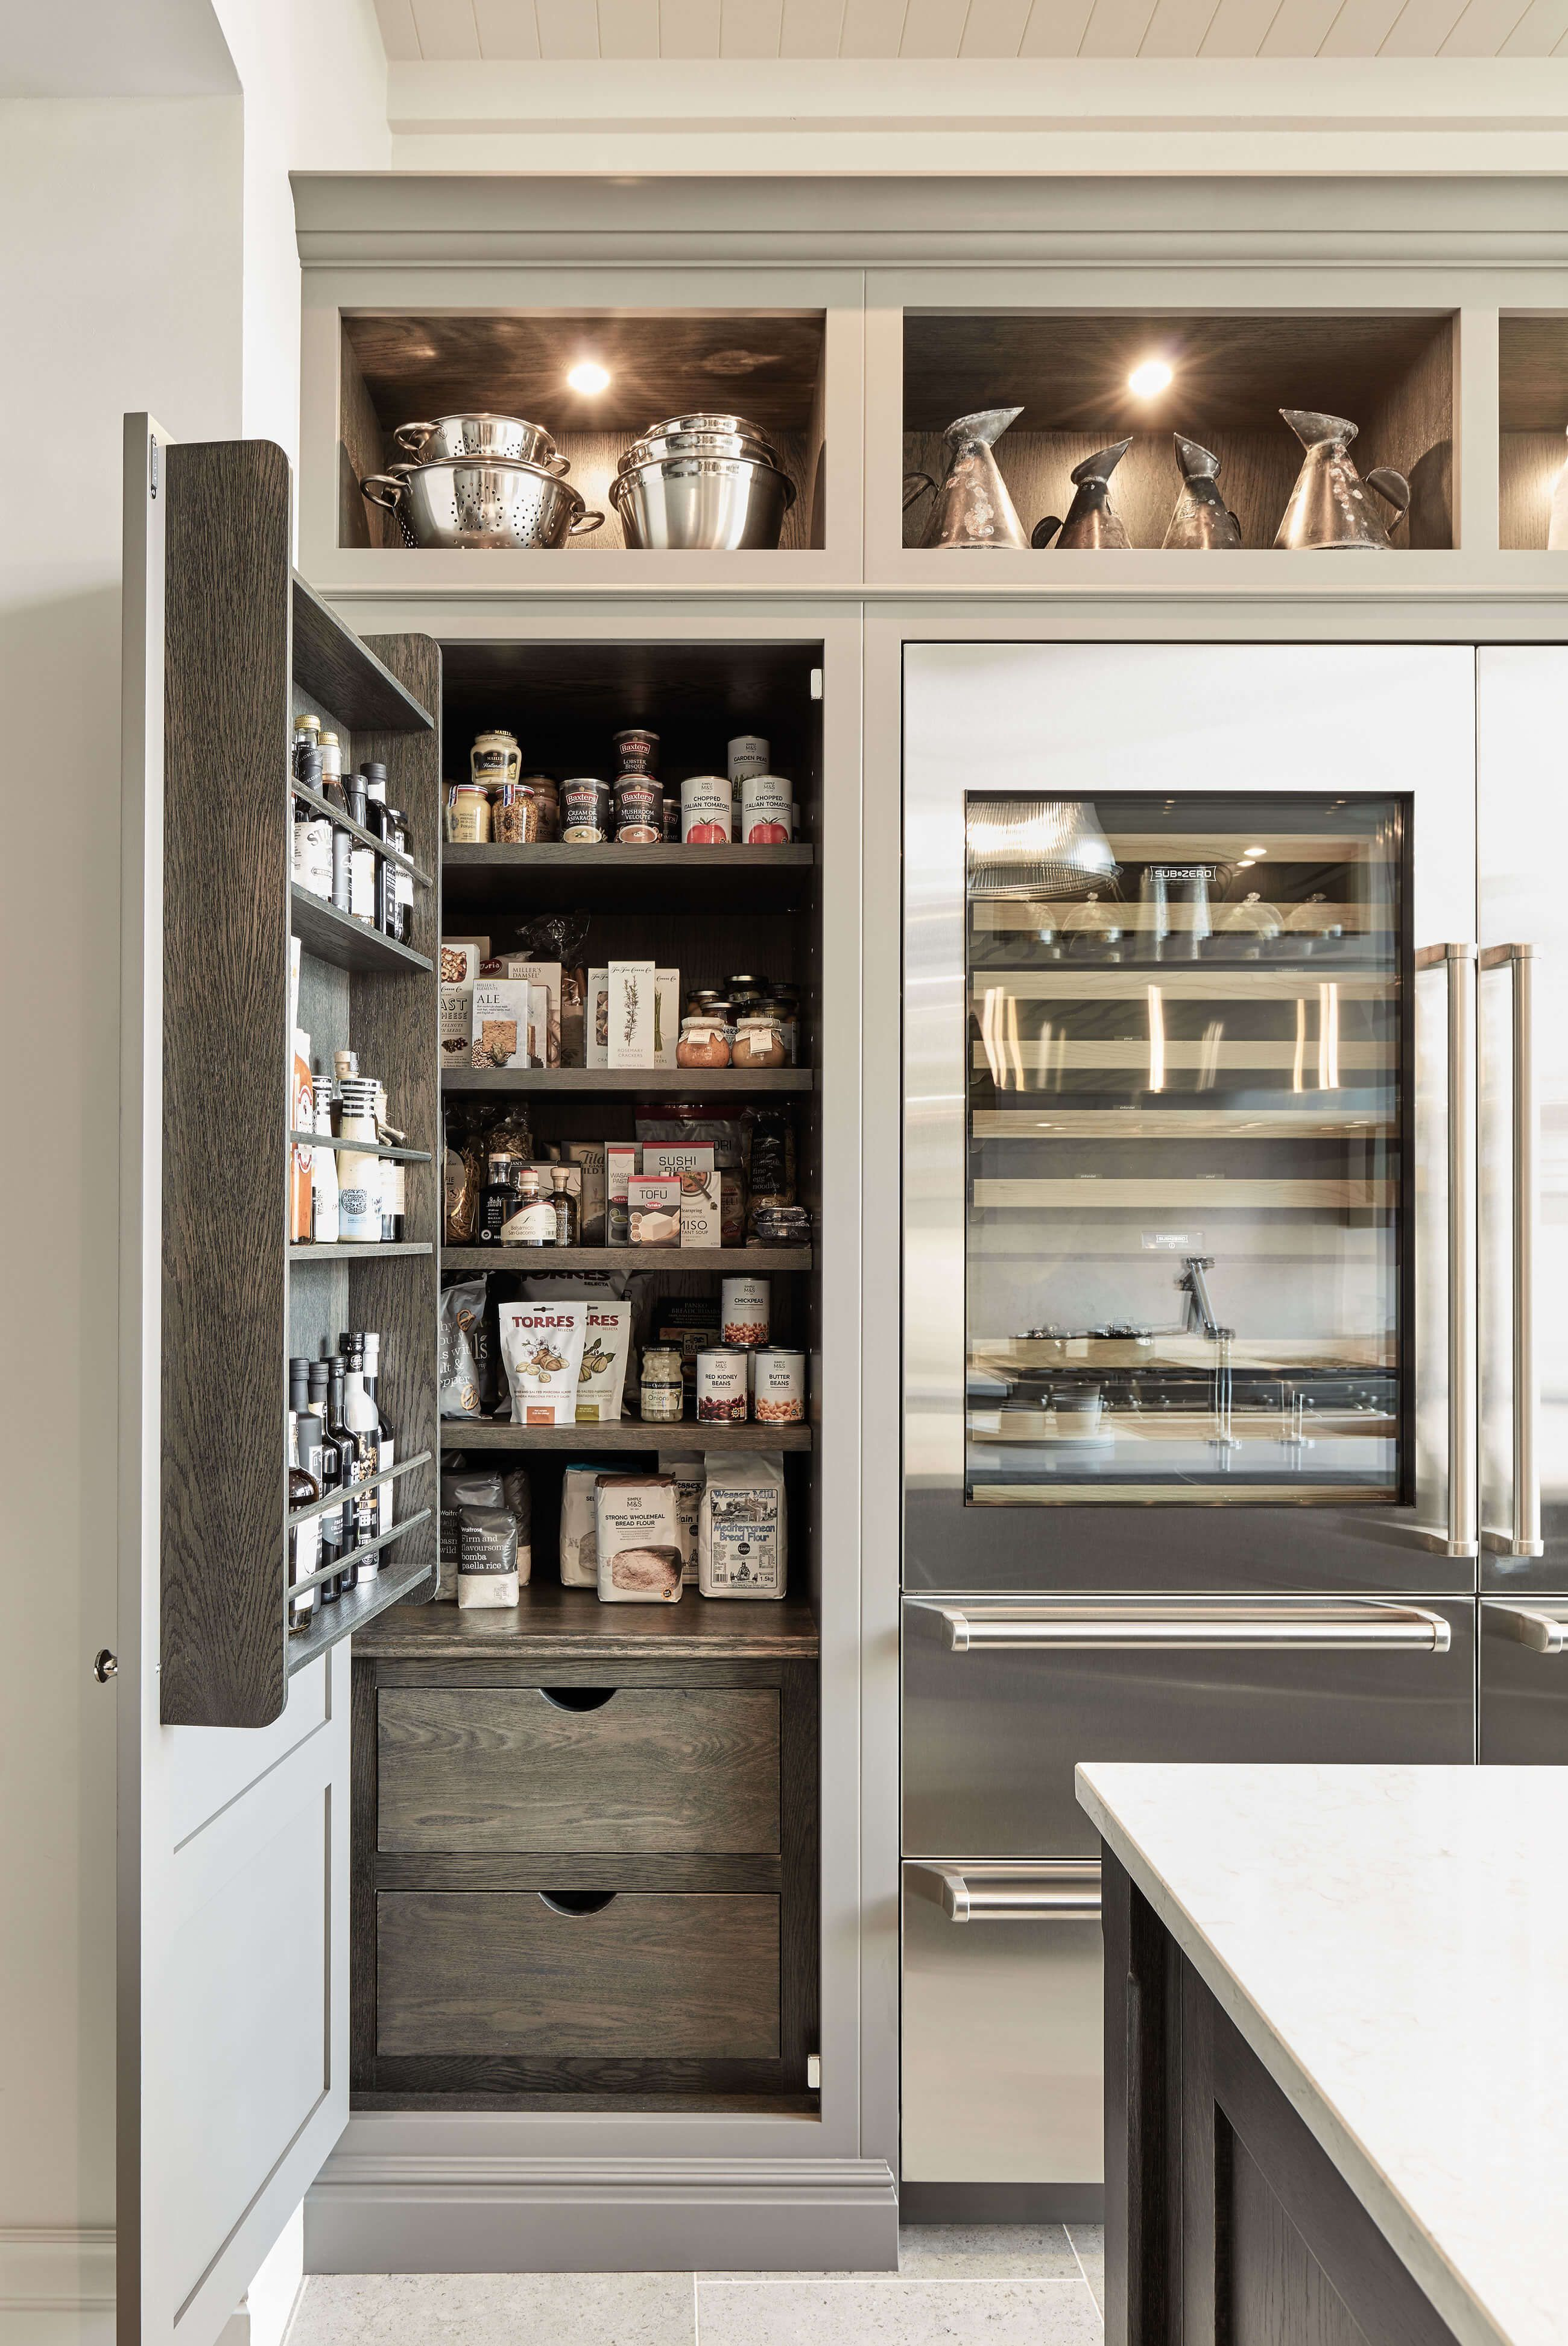 Tom Howley Grey Modern Kitchen With Pantry Storage Love The Stained Wood Inside Cabinet Modernkitch Modern Grey Kitchen Pantry Design Interior Design Kitchen